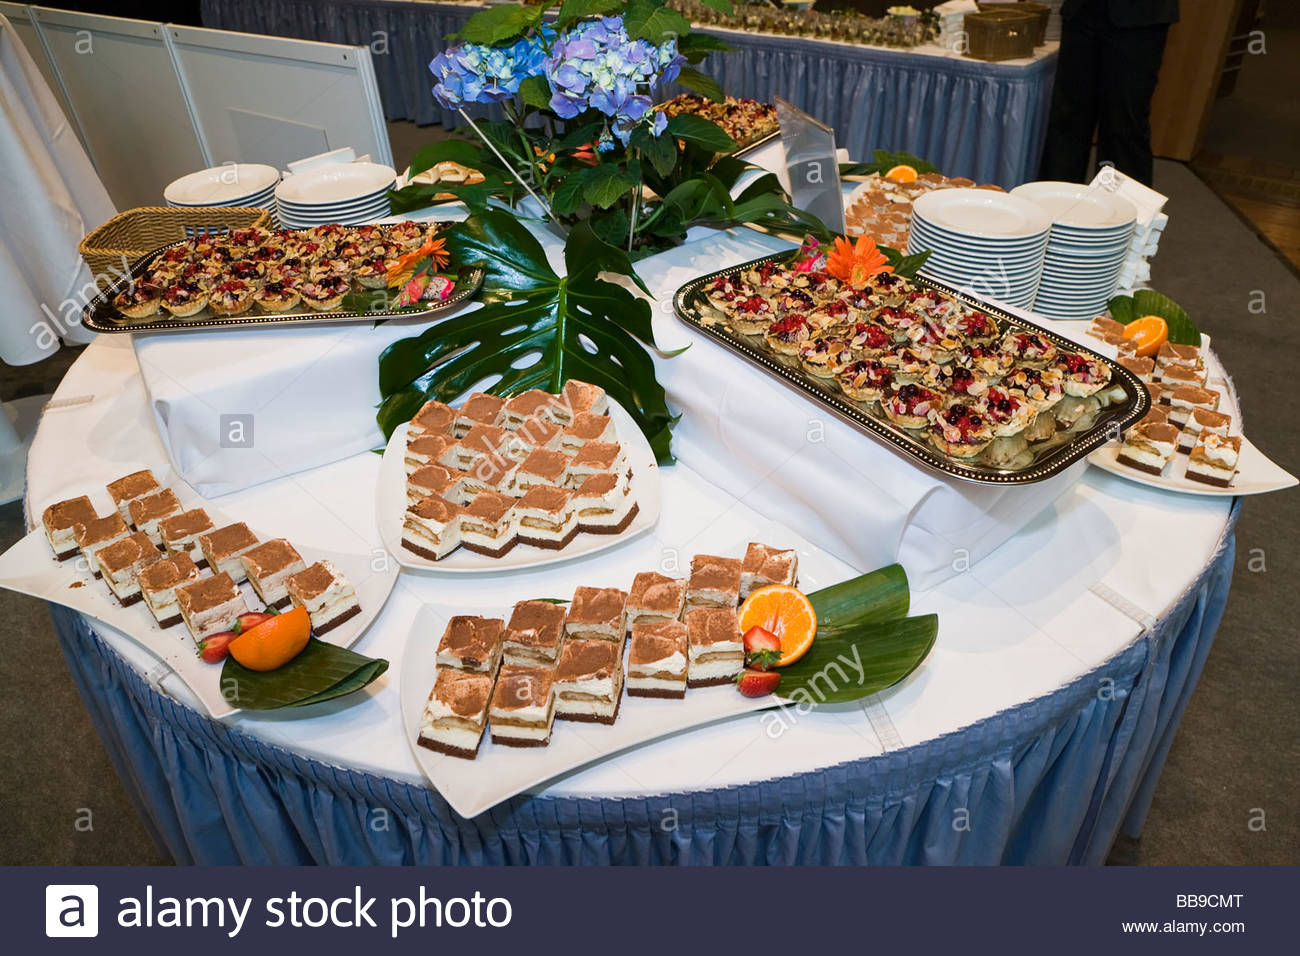 dessert buffet table food tiramisu fruit cookies eating canape stock photo 24179144 alamy. Black Bedroom Furniture Sets. Home Design Ideas